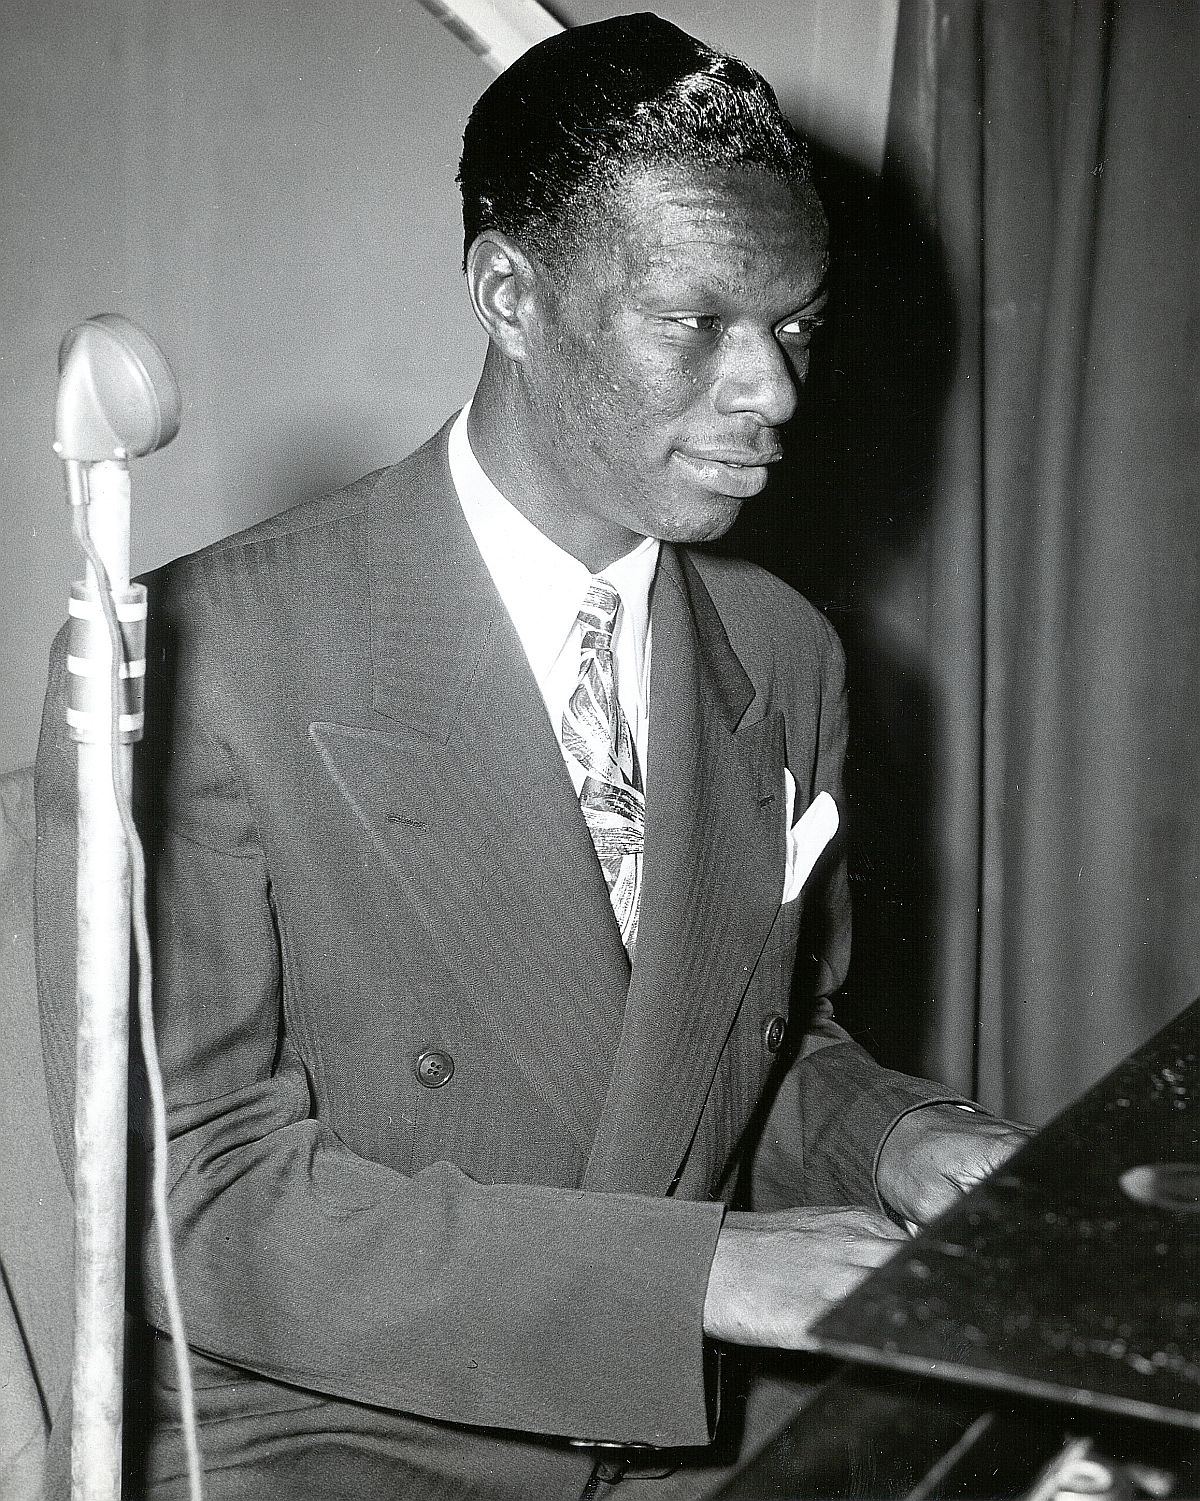 Nat King Cole - Hittin' The Ramp- The Early Years (193 - PHOTO Photo by Charlie Mihn. Courtesy of LaBudde Special Collections, UMKC University Libraries_1200